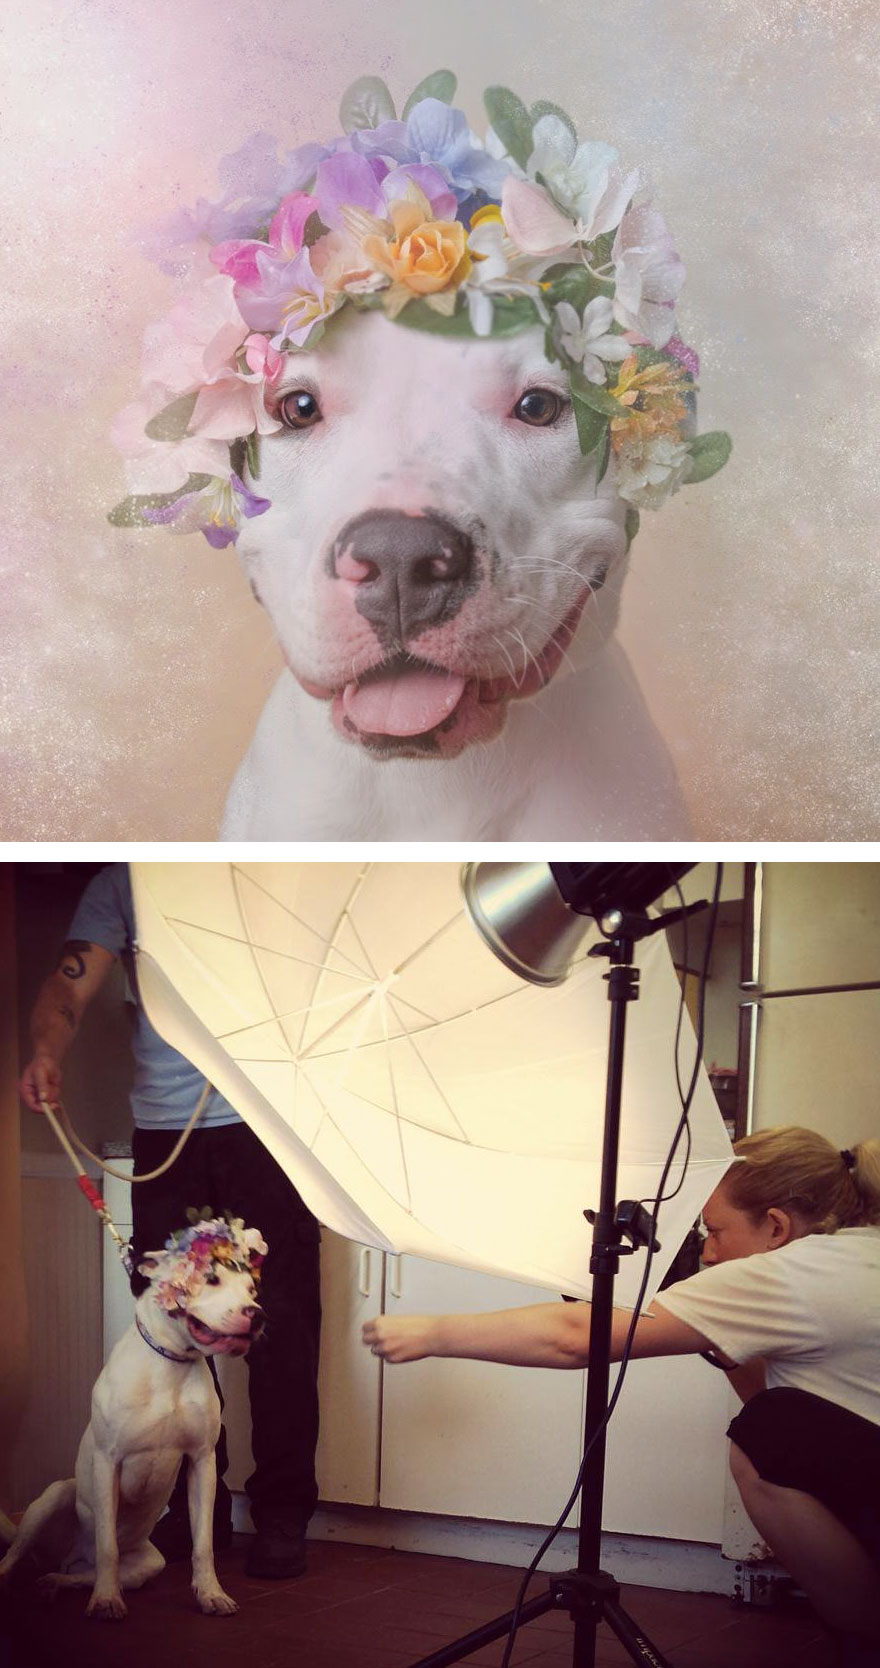 #26 Behind The Scenes Of Pit Bull Flower Power Photoshoot